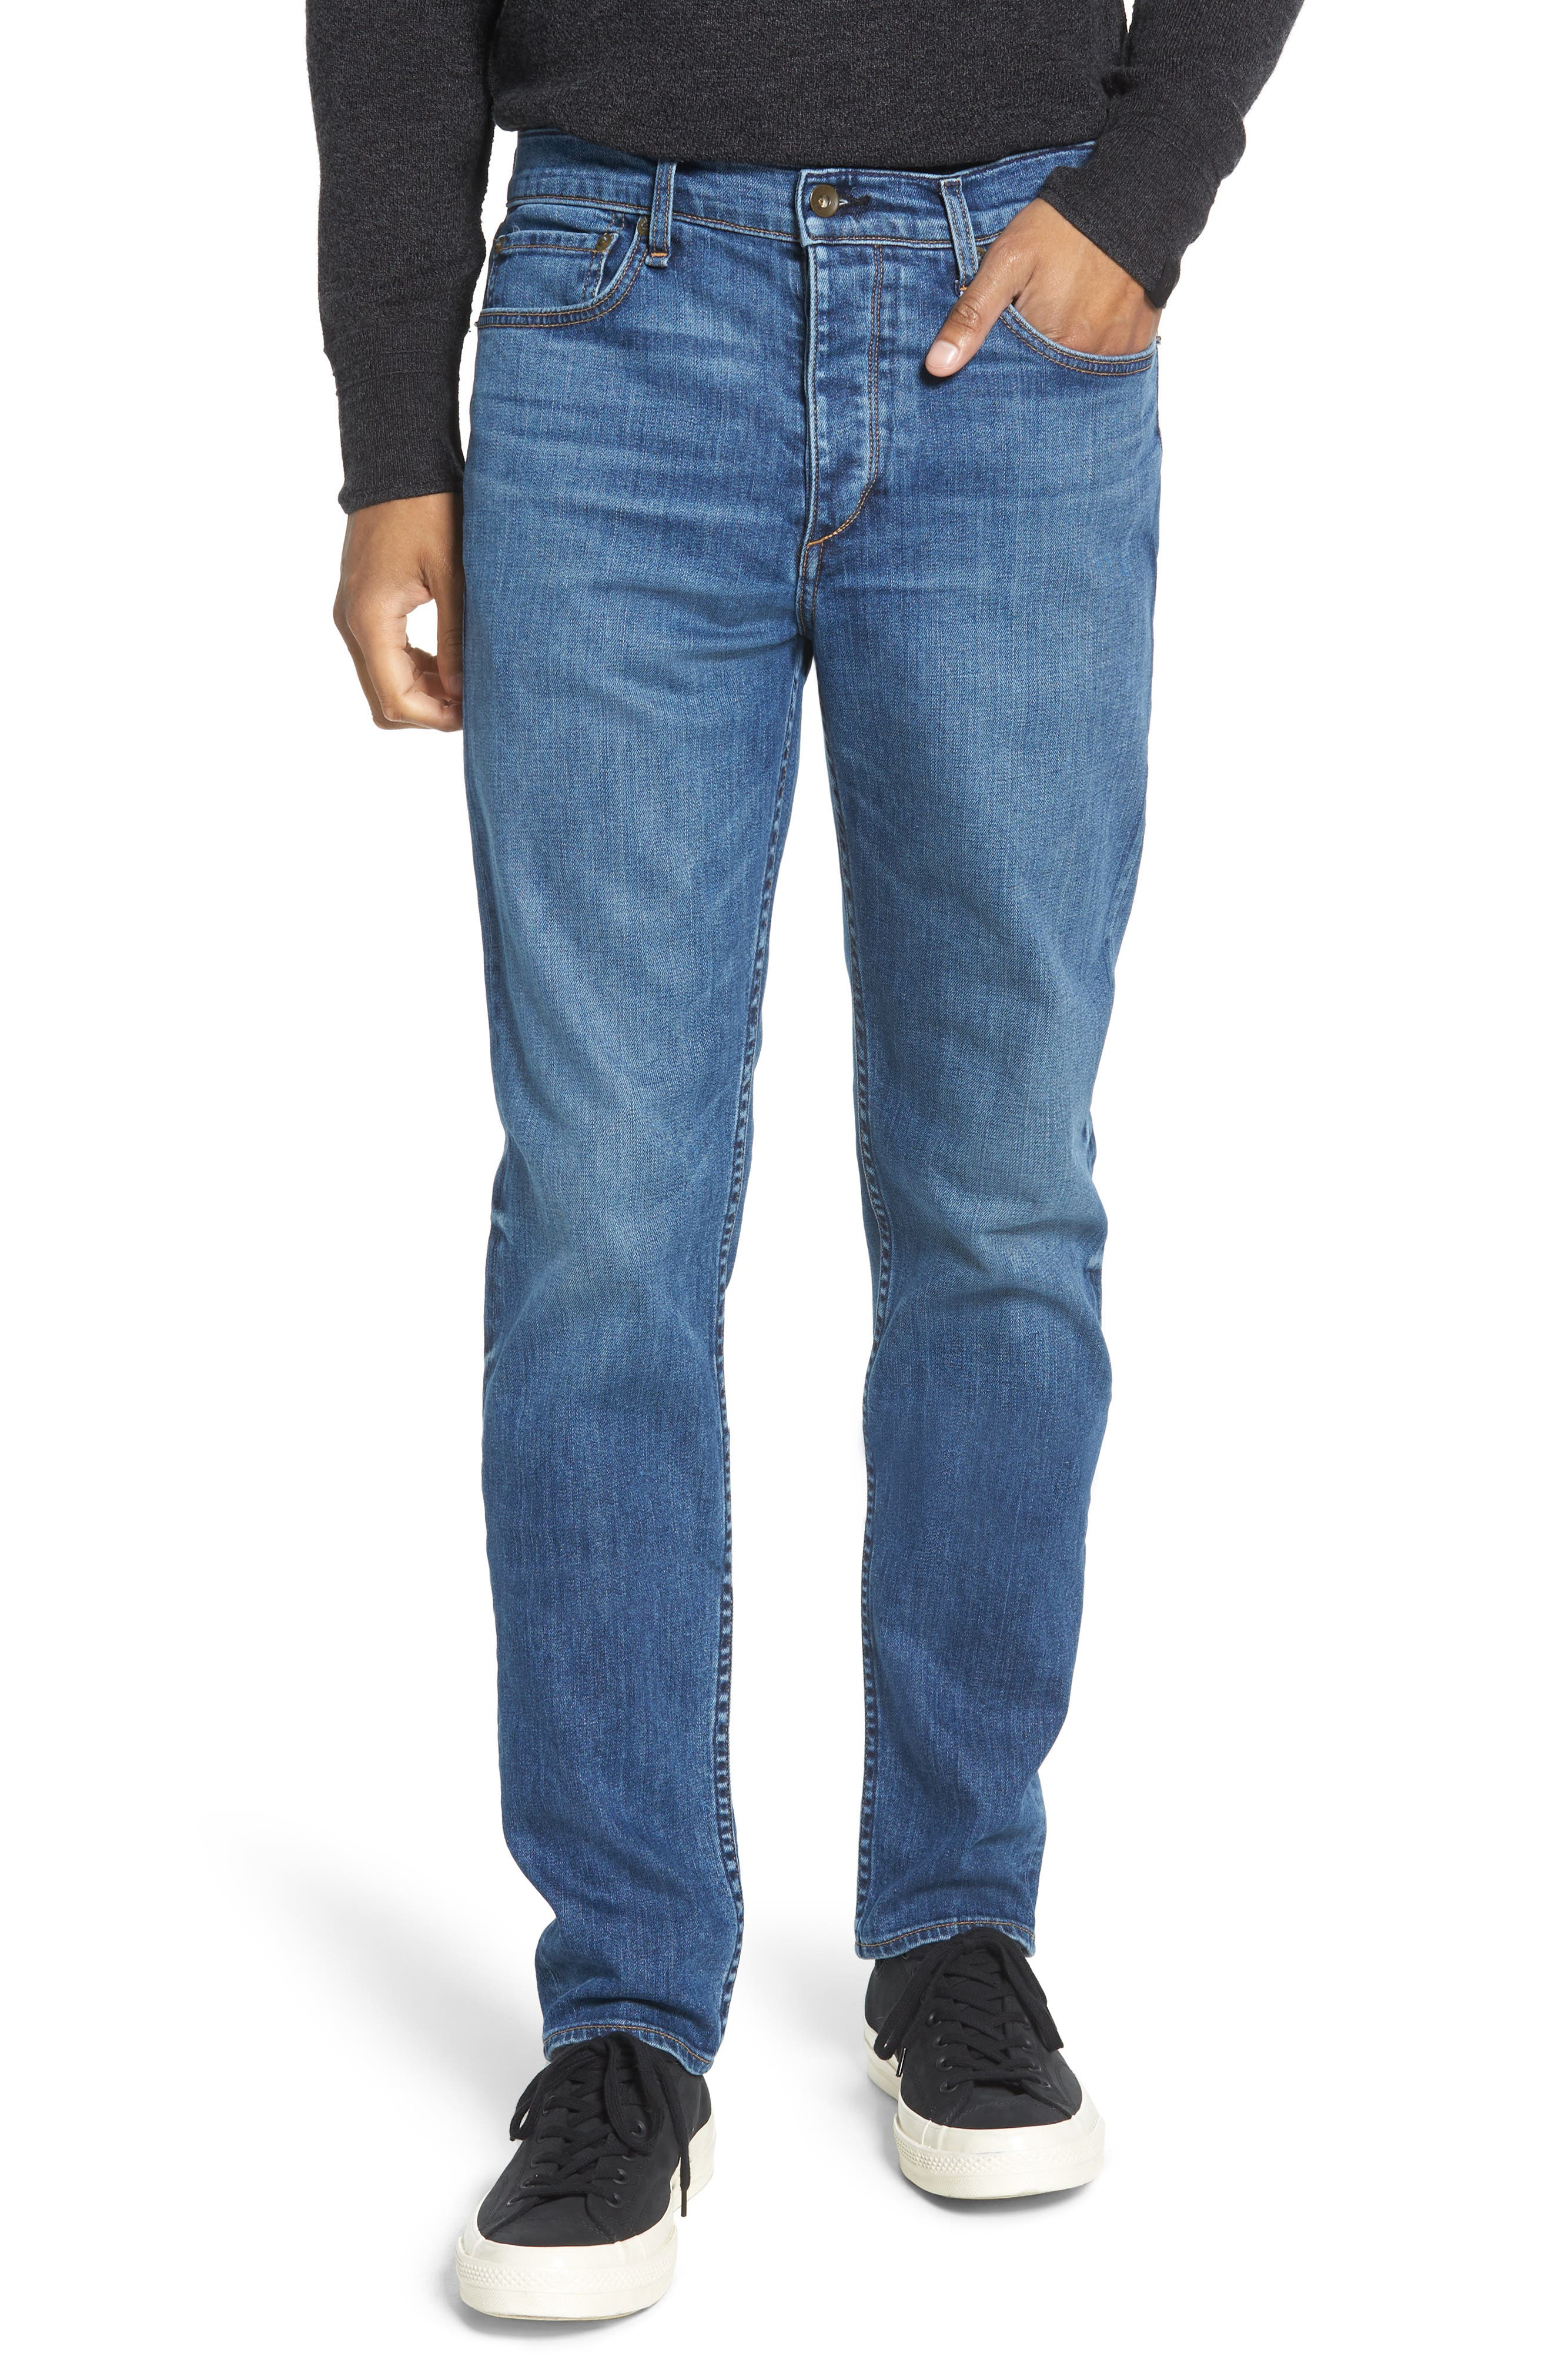 Fit 2 Slim Fit Jeans,                             Main thumbnail 1, color,                             LENNY